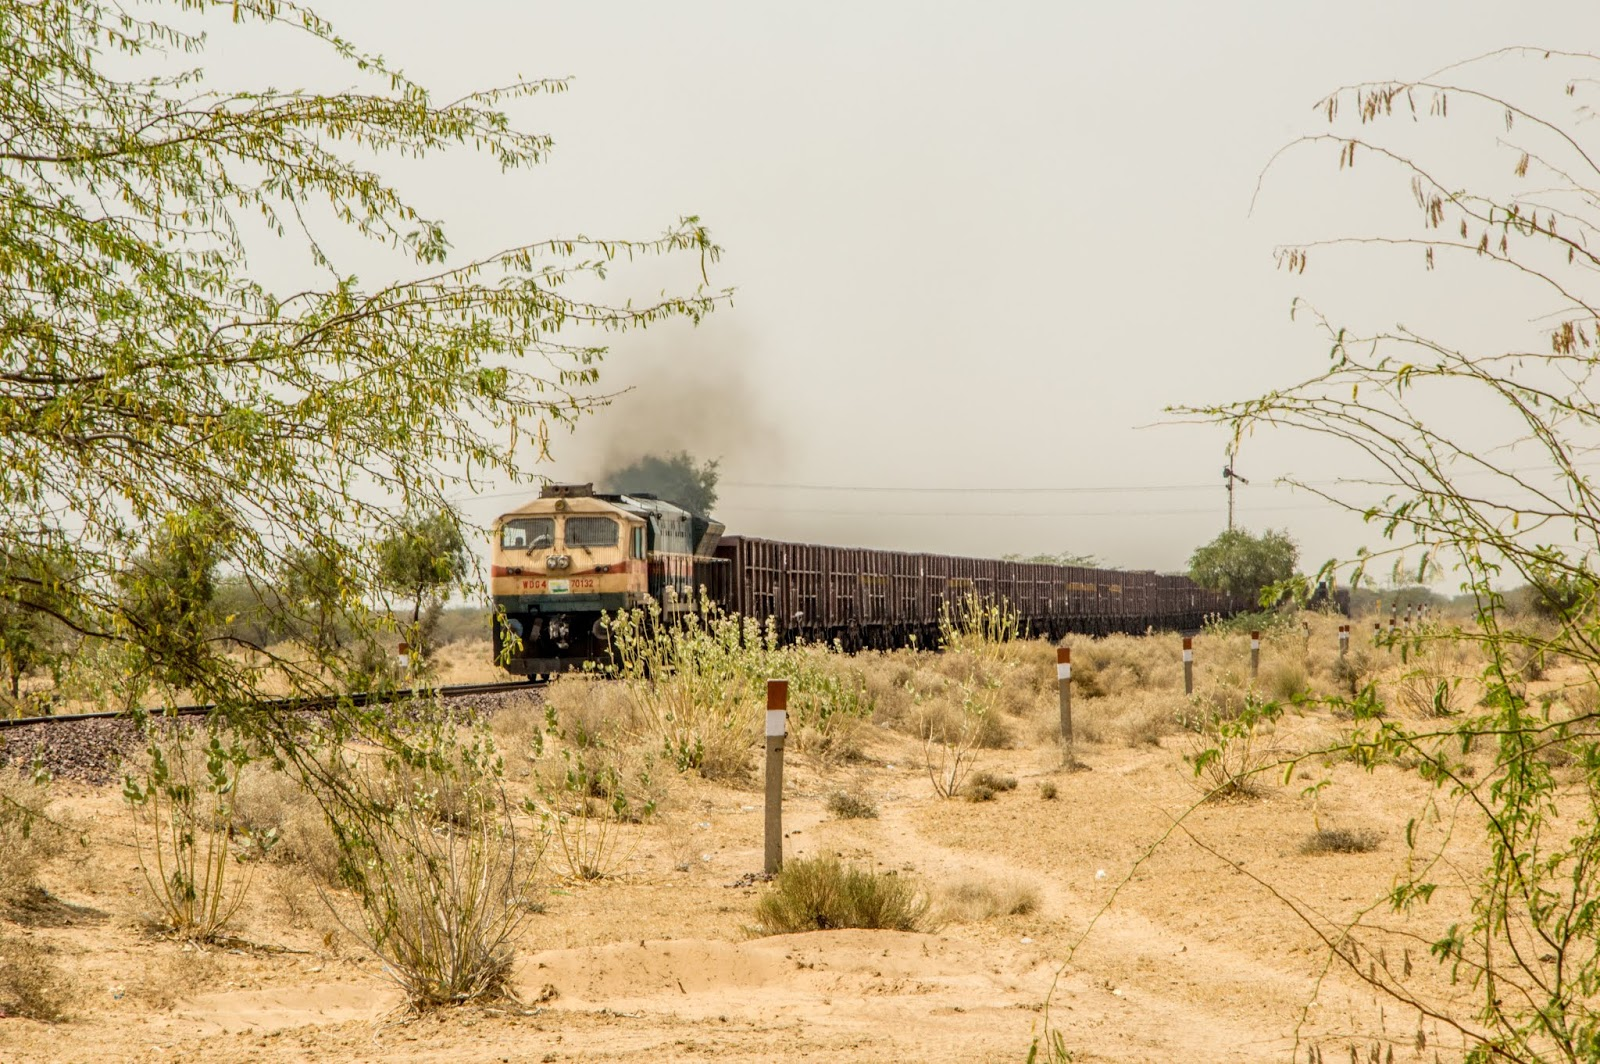 arid land and a train passing through